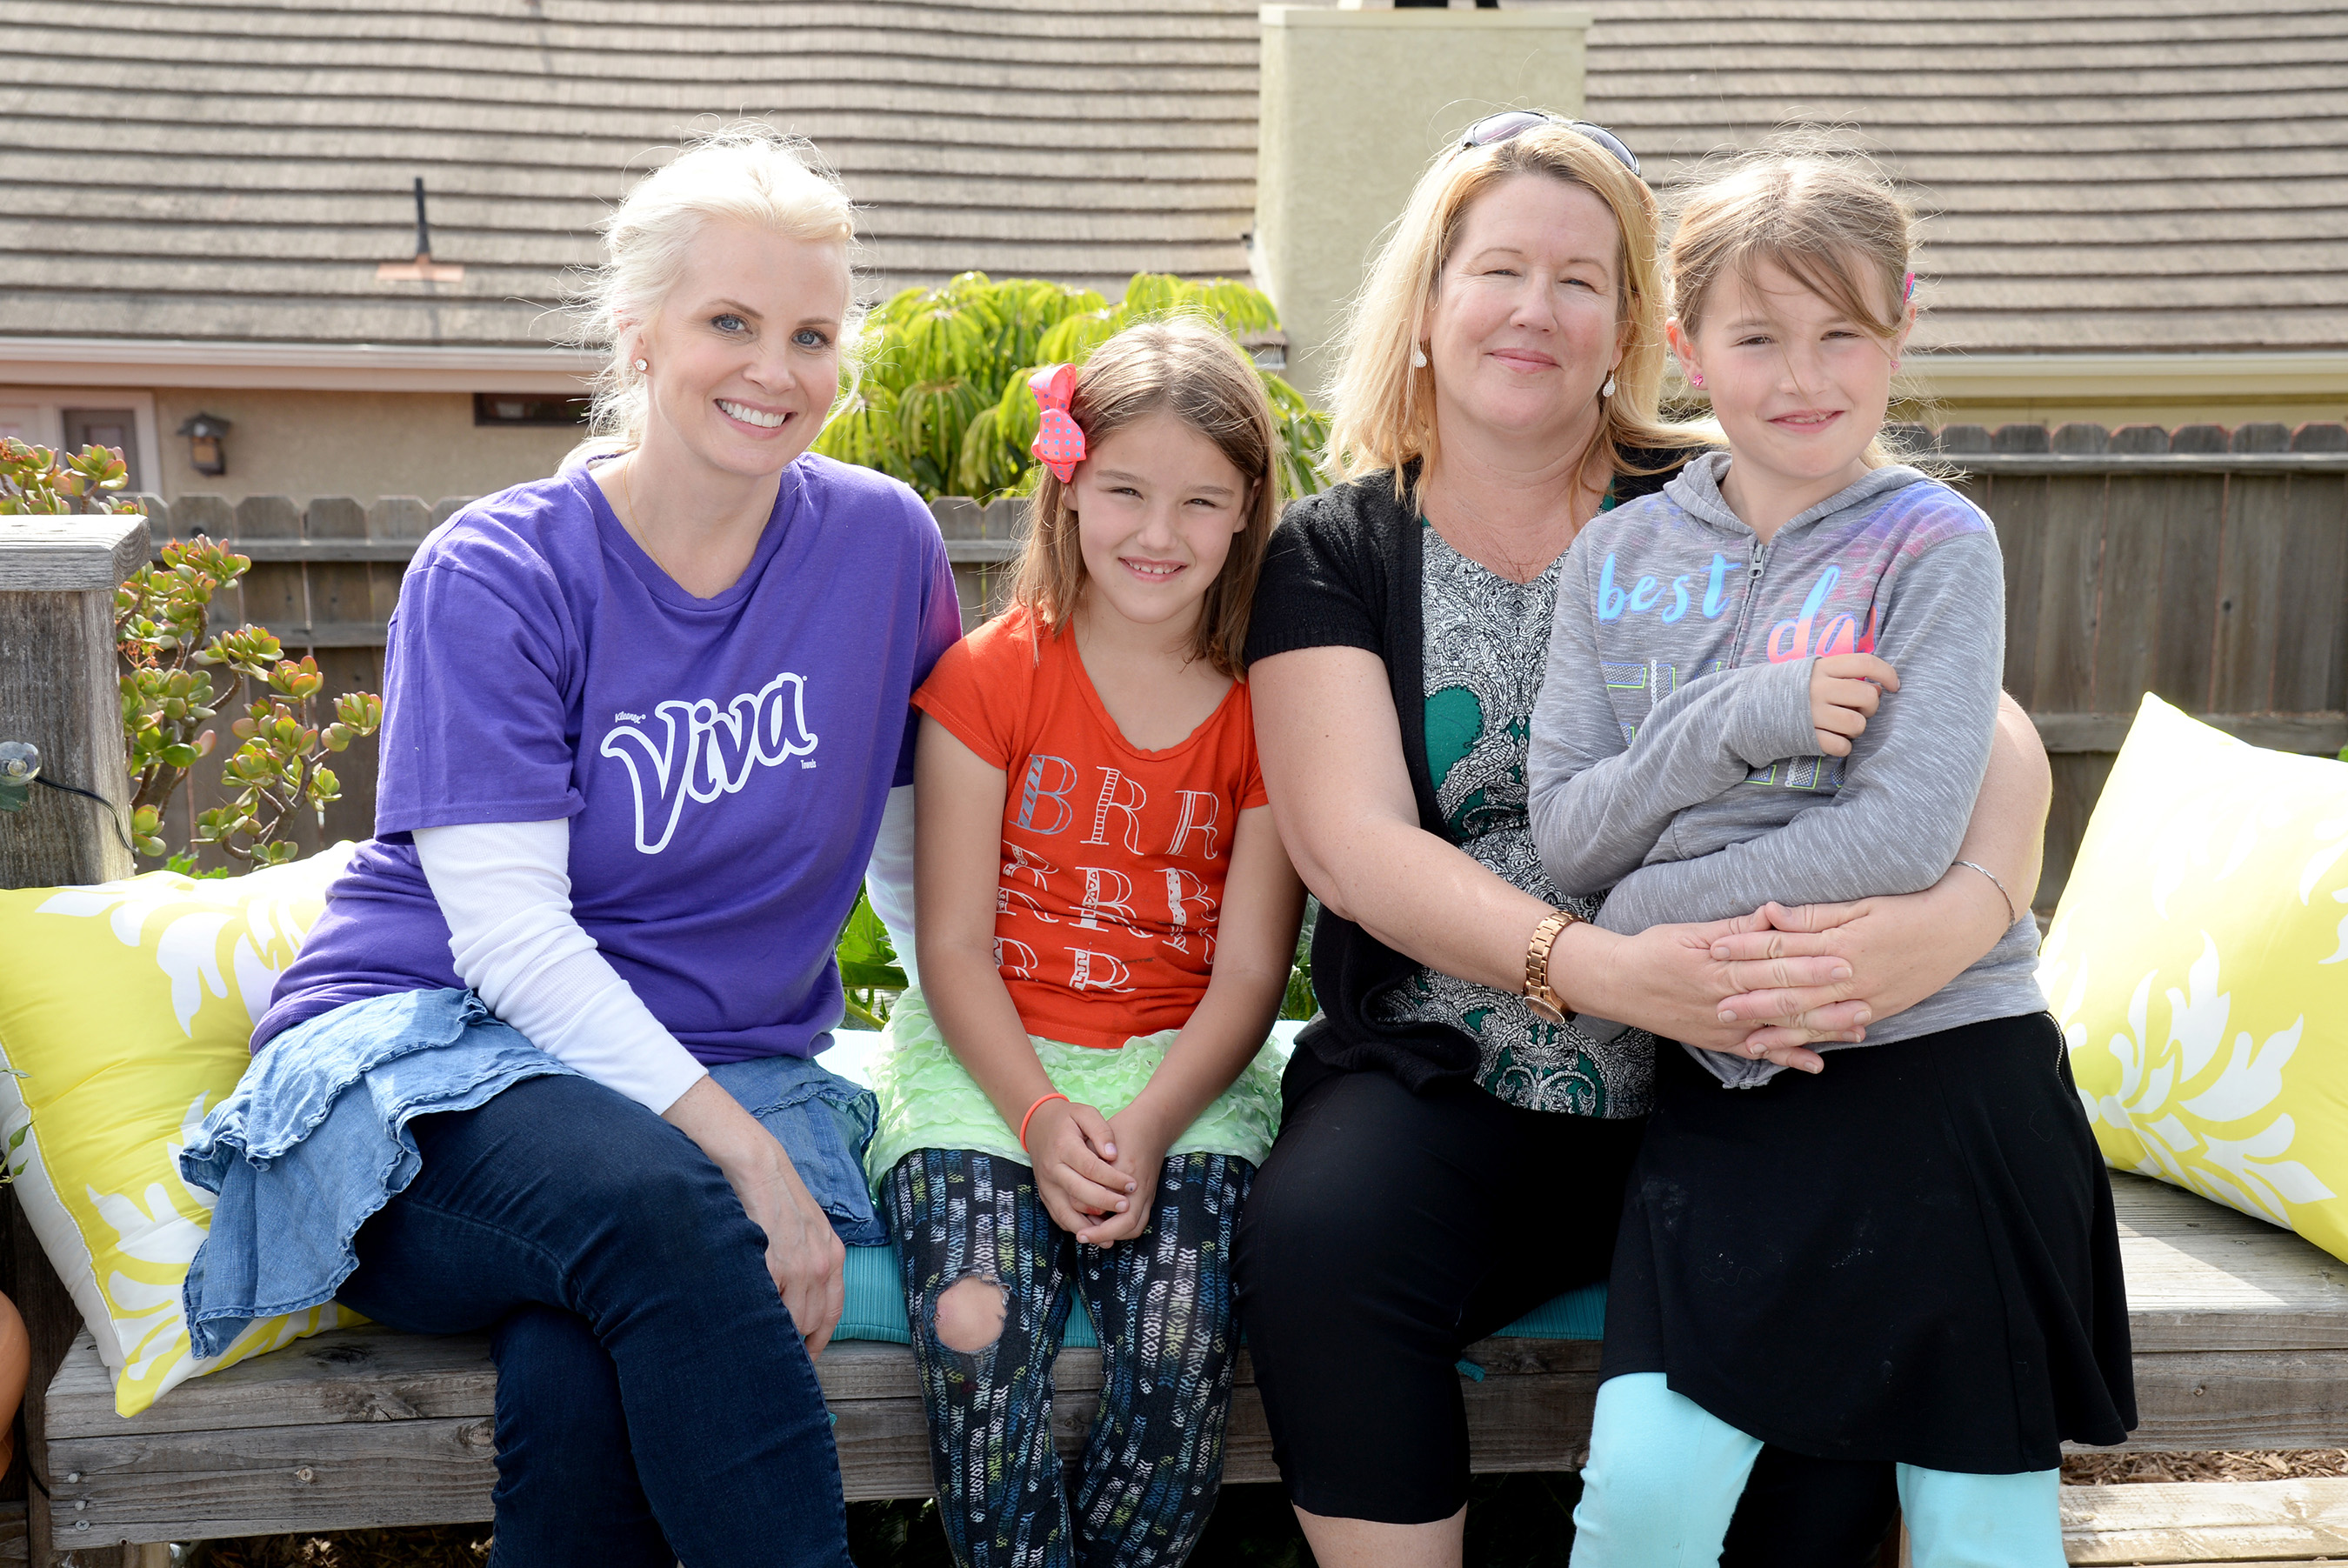 VENTURA, CALIFORNIA - APRIL 06: Actress and DIY expert Monica Potter poses with Cori Quick and her two daughters Daphne and Audrey who received a newly-rehabbed outdoor and patio space from Boys and Girls Club of Greater Ventura on April 6, 2016 in Ventura, California. (Photo by Michael Kovac/Getty Images for Viva (Kimberly-Clark))